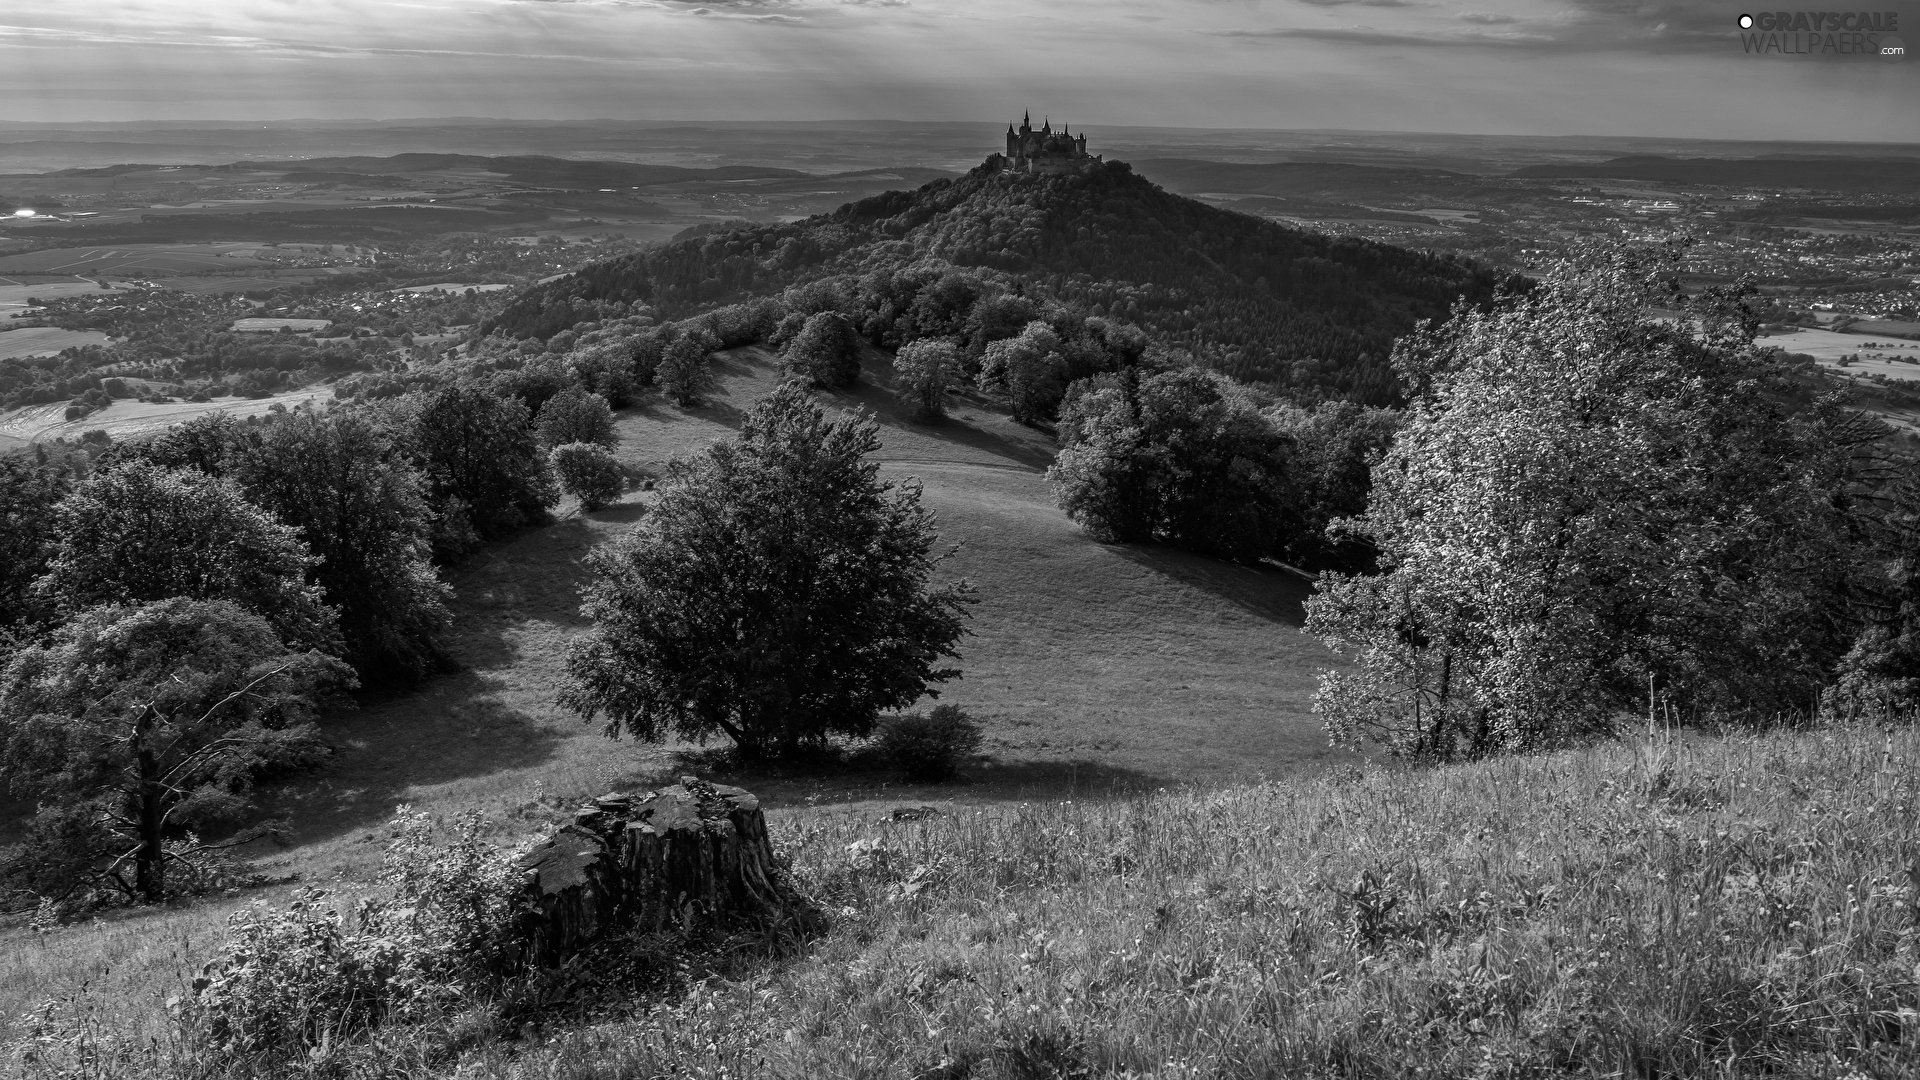 trees, viewes, Germany, clouds, Baden-W?rttemberg, Hohenzollern Castle, Hohenzollern Mountain, Hill